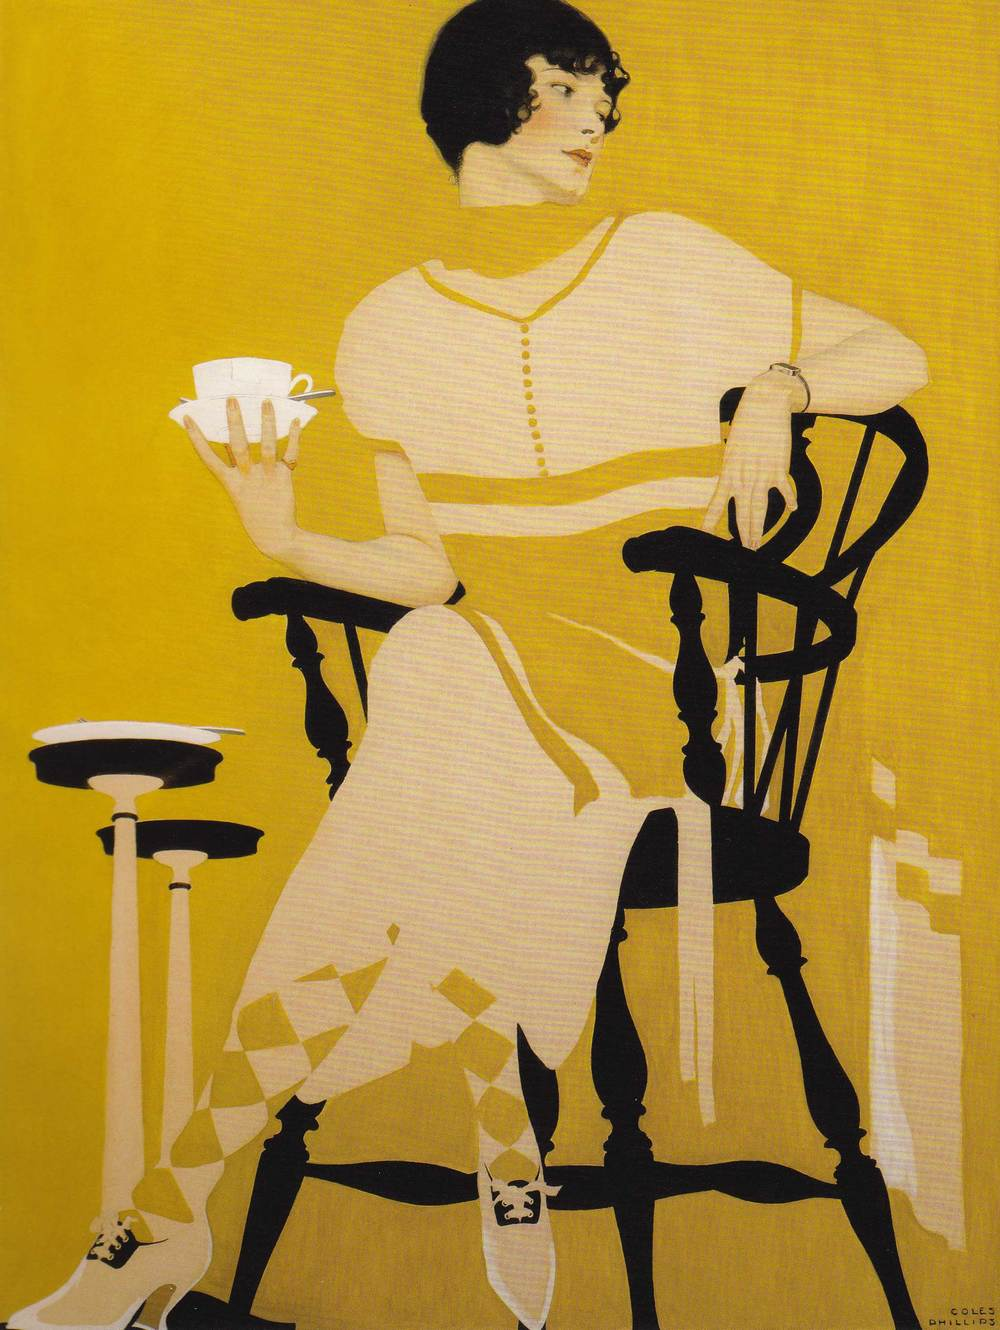 Coles Phillips, The Magic Hour, illustration for Oneida Community Plate advertisement, I924.